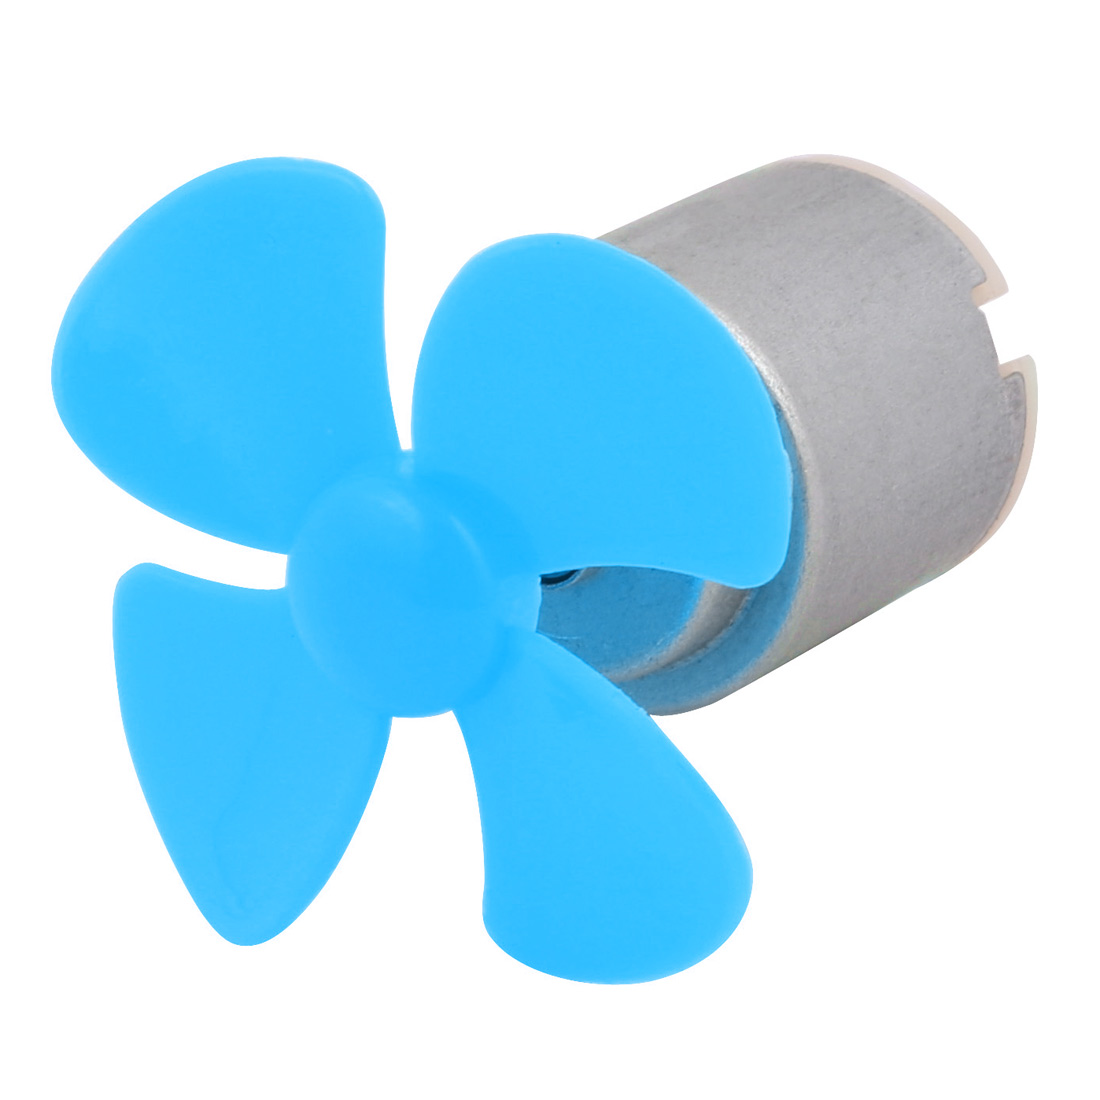 DC 3V 0.13A 14000RPM Large Torque Motor 4-Vane 40mm Dia Propeller Blue for RC Model